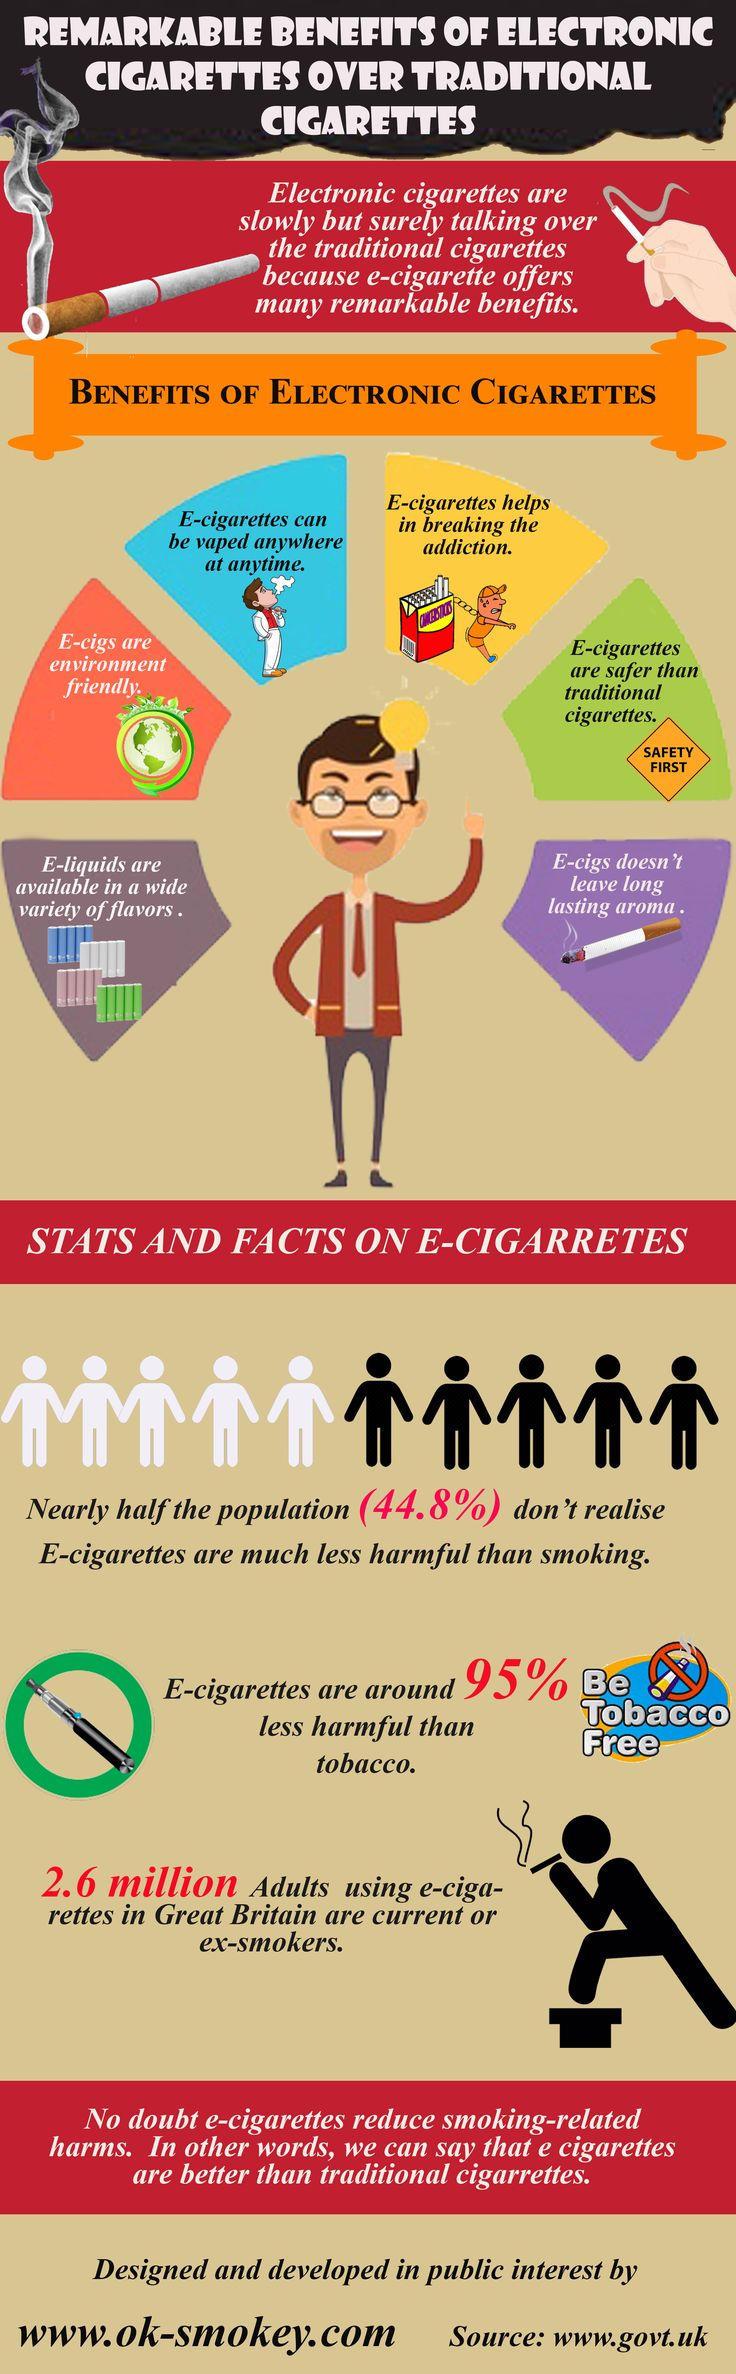 Remarkable Benefits of Electronic Cigarettes Over Traditional Cigarettes